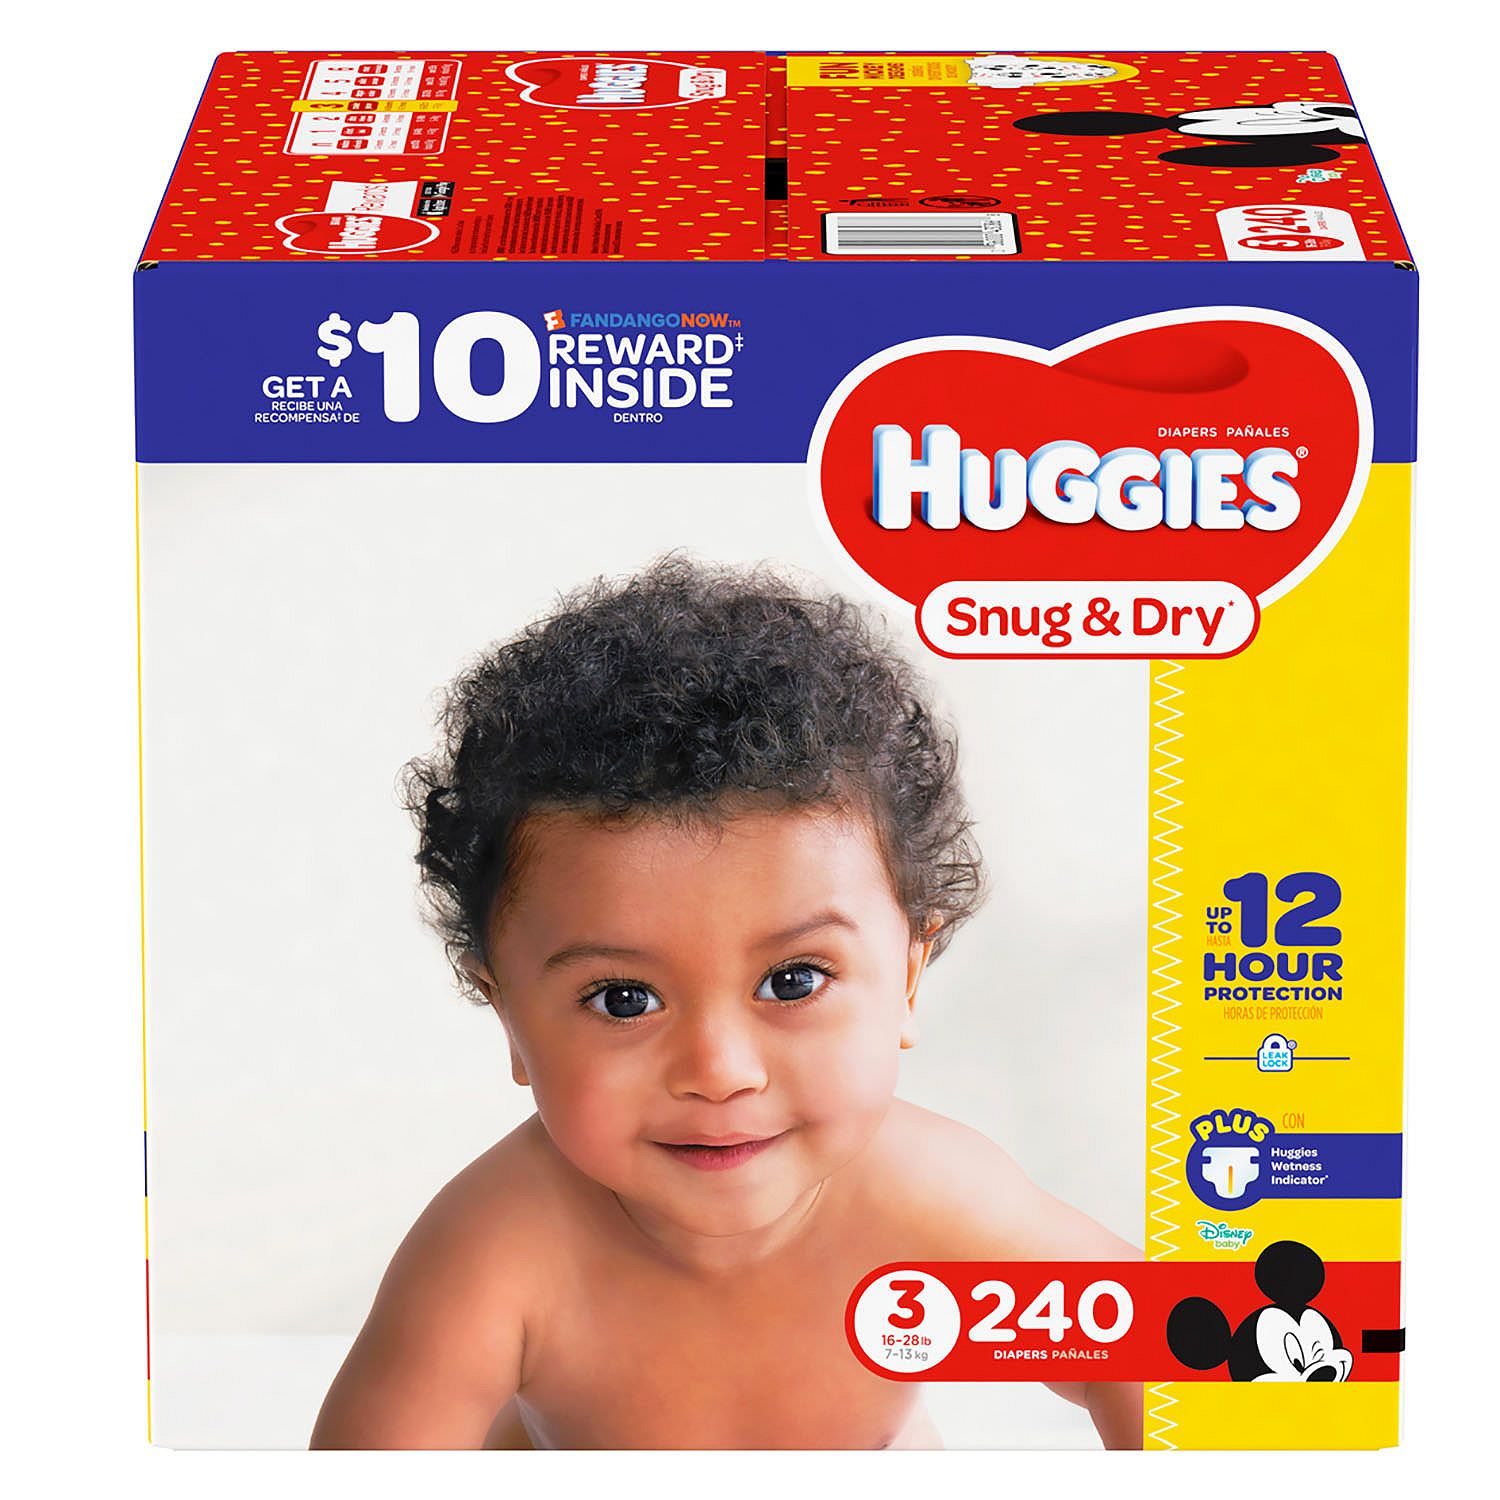 Huggies Snug & Dry Diapers Size 3 -240 ct. (16-28 lbs.) by Unbranded